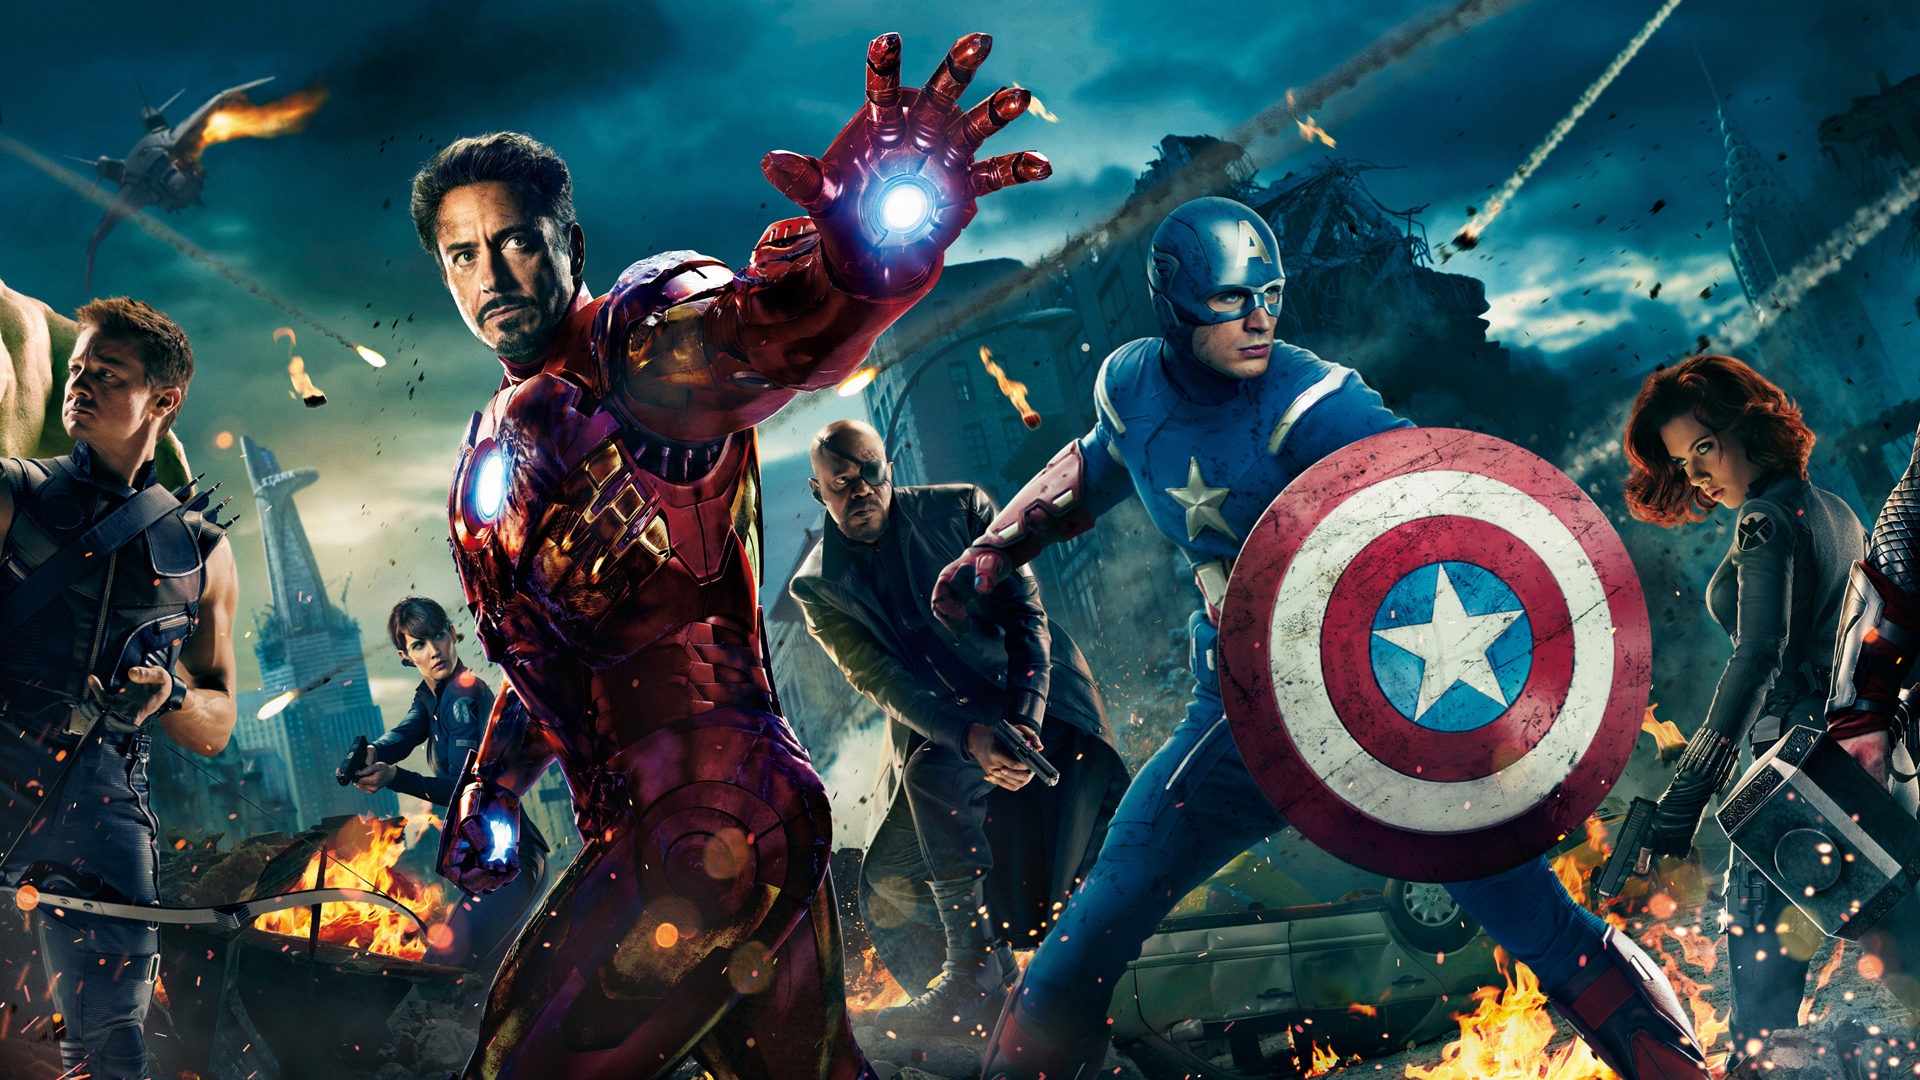 Hd Avengers Wallpaper Posted By Christopher Cunningham